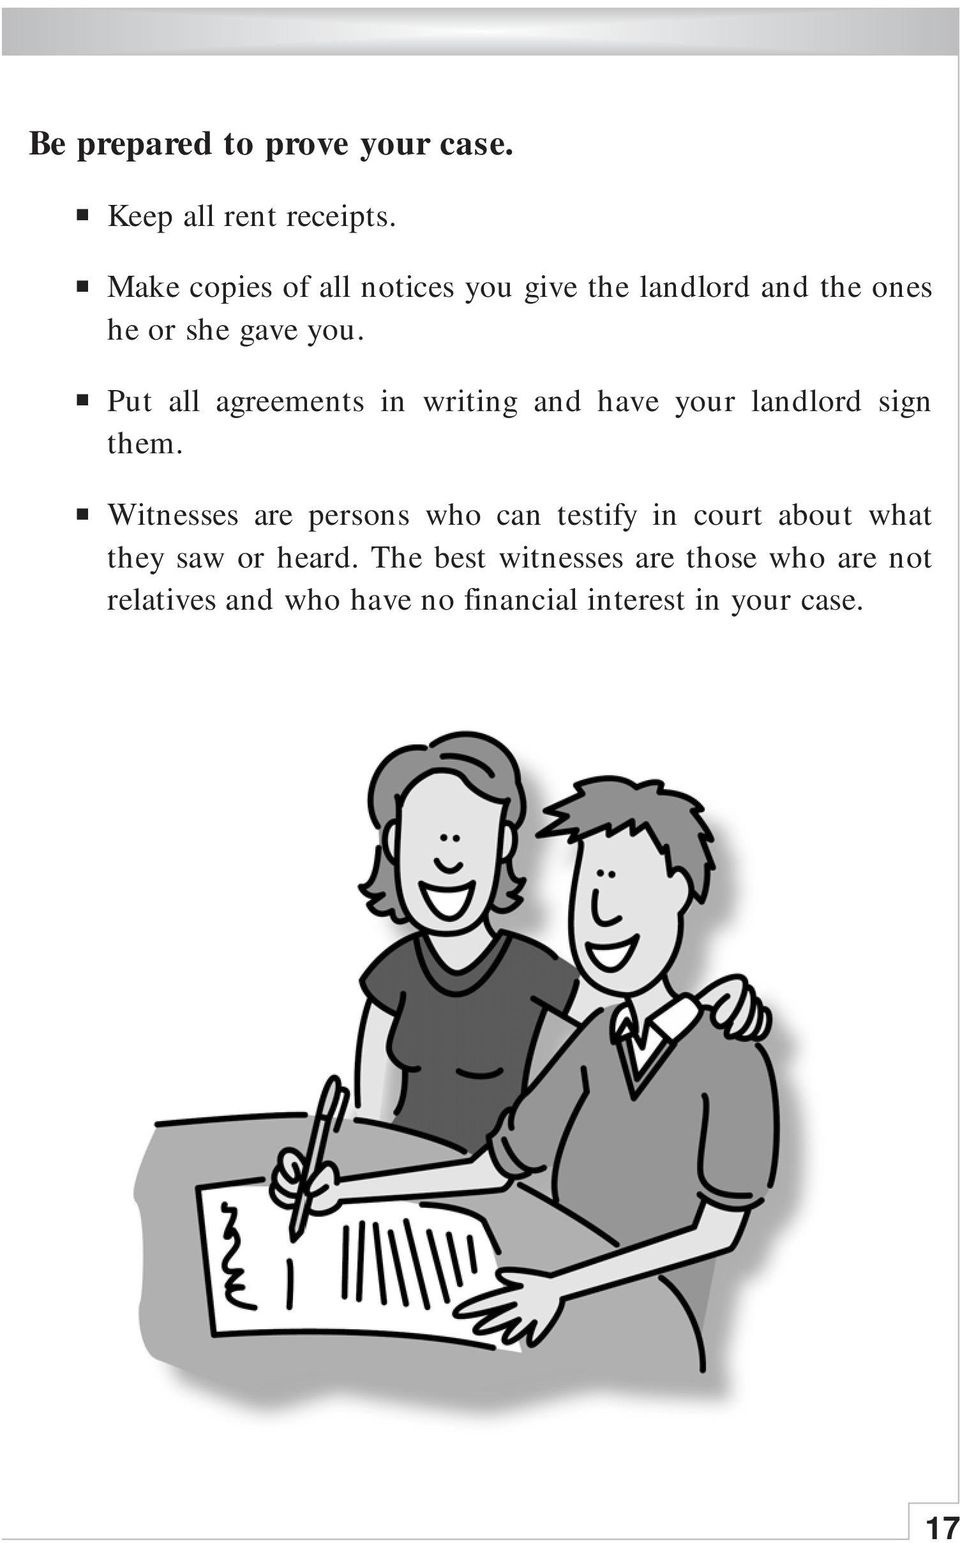 Put all agreements in writing and have your landlord sign them.